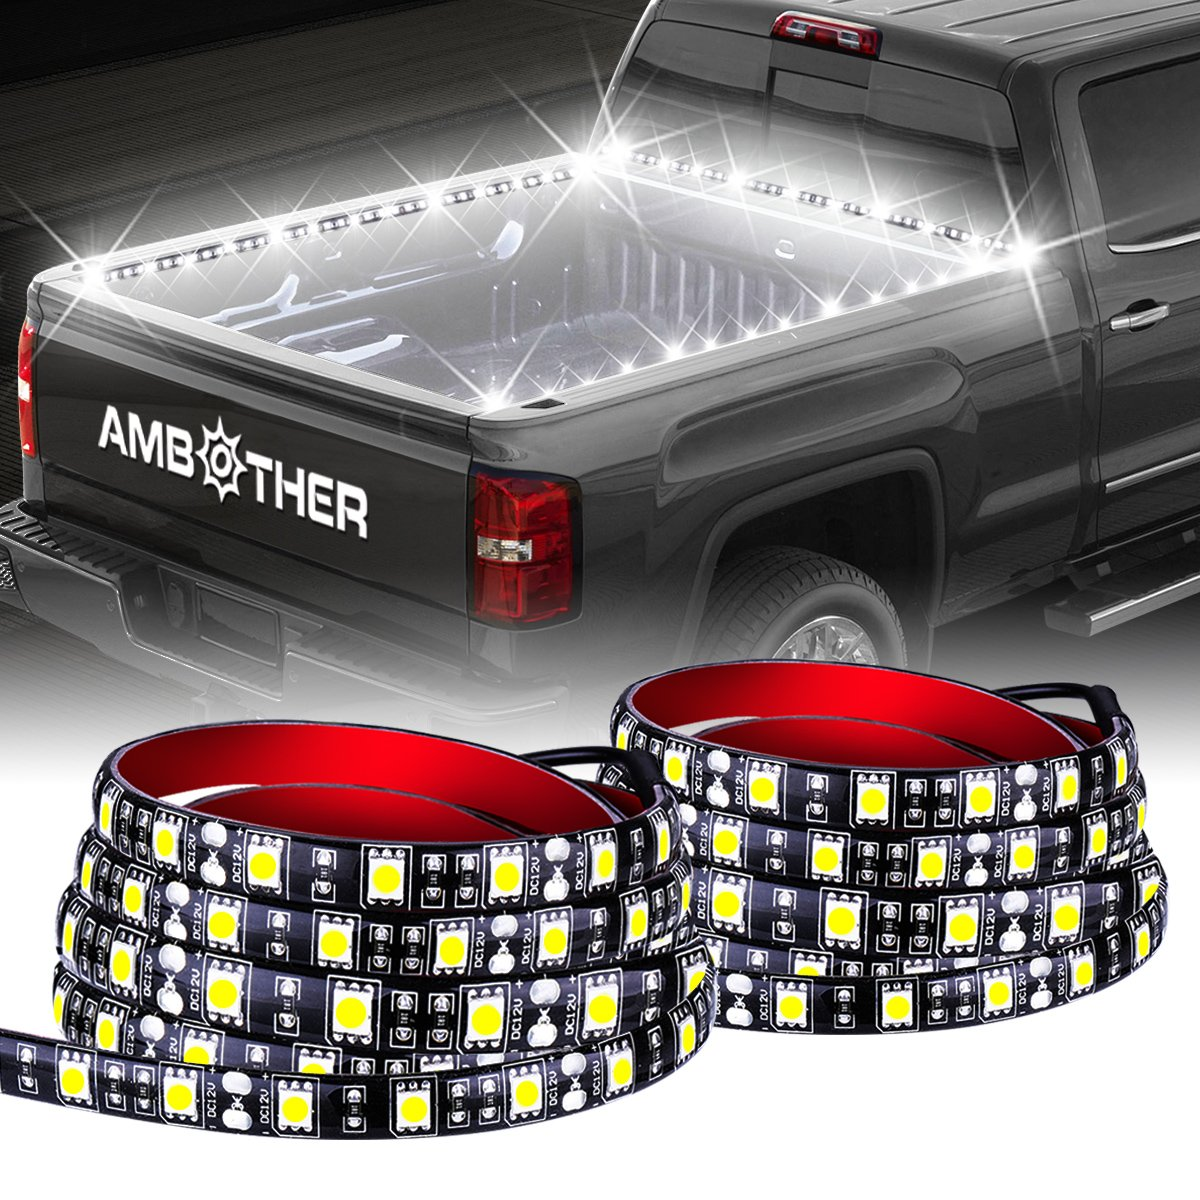 """AMBOTHER 2PCS 60""""Cargo Truck Bed Lights Strip Flexible Light bar White LED light for Truck Boat Pickup RV SUV,With On-Off Switch Fuse 2-Way Splitter Cable,No-Drill,1 Year Warranty"""